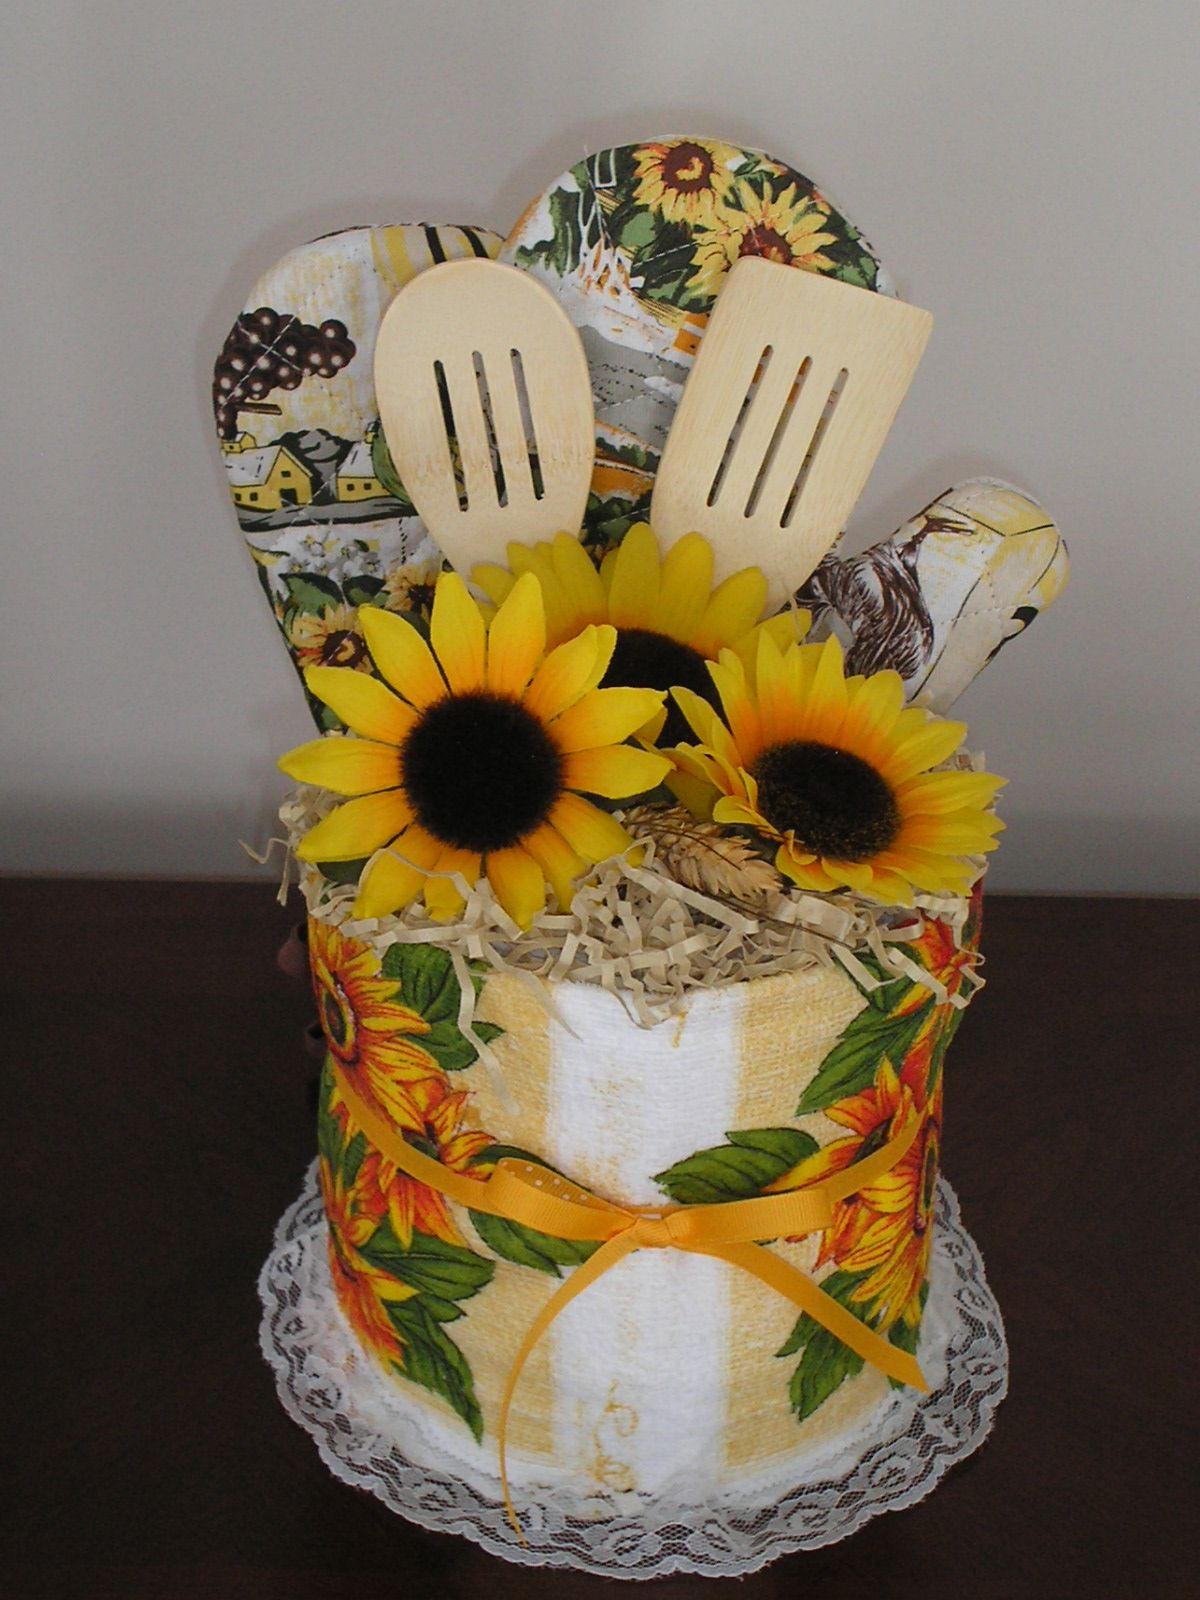 Marvelous Sunflower Favors For Bridal Shower | ... Day Gift, Bridal Shower, House · Dish  Towel ...